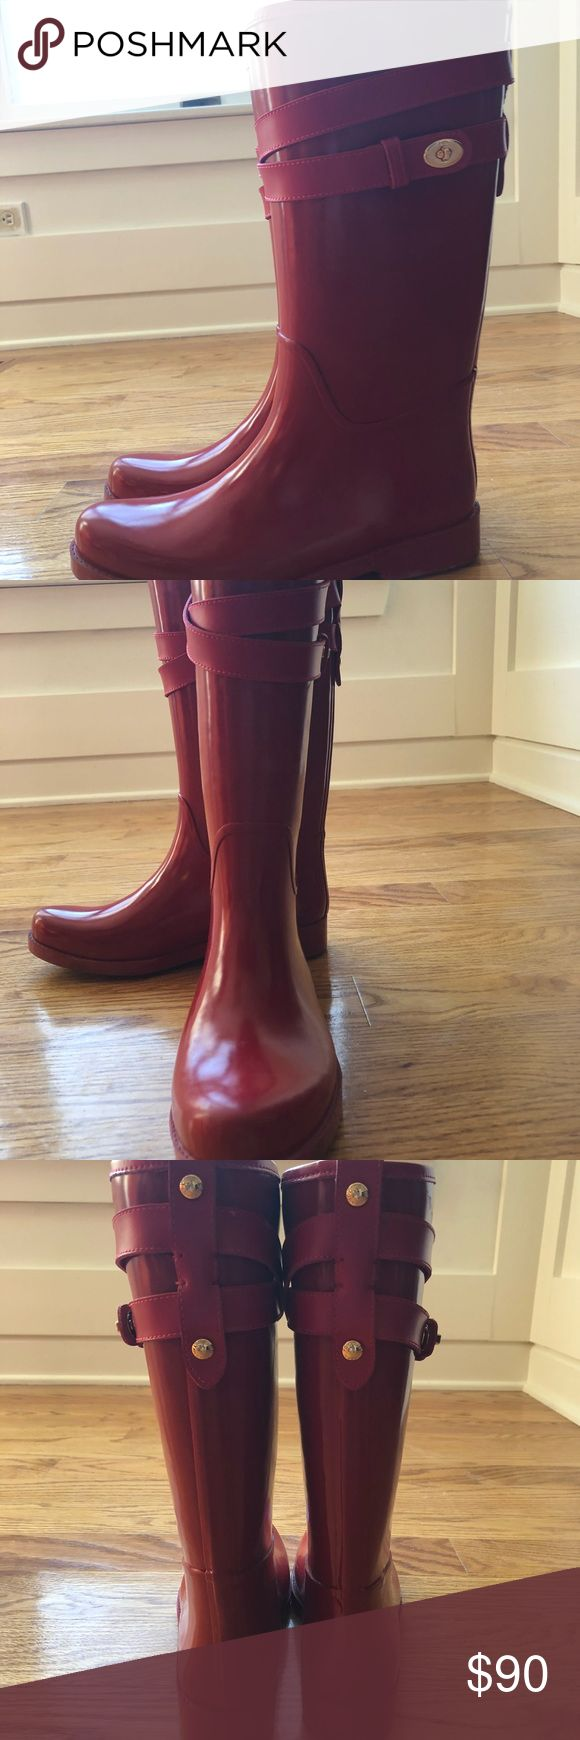 Red coach rain boots adorable red coach rain boots. Only worn once!! Perfect for winter weather! Coach Shoes Winter & Rain Boots